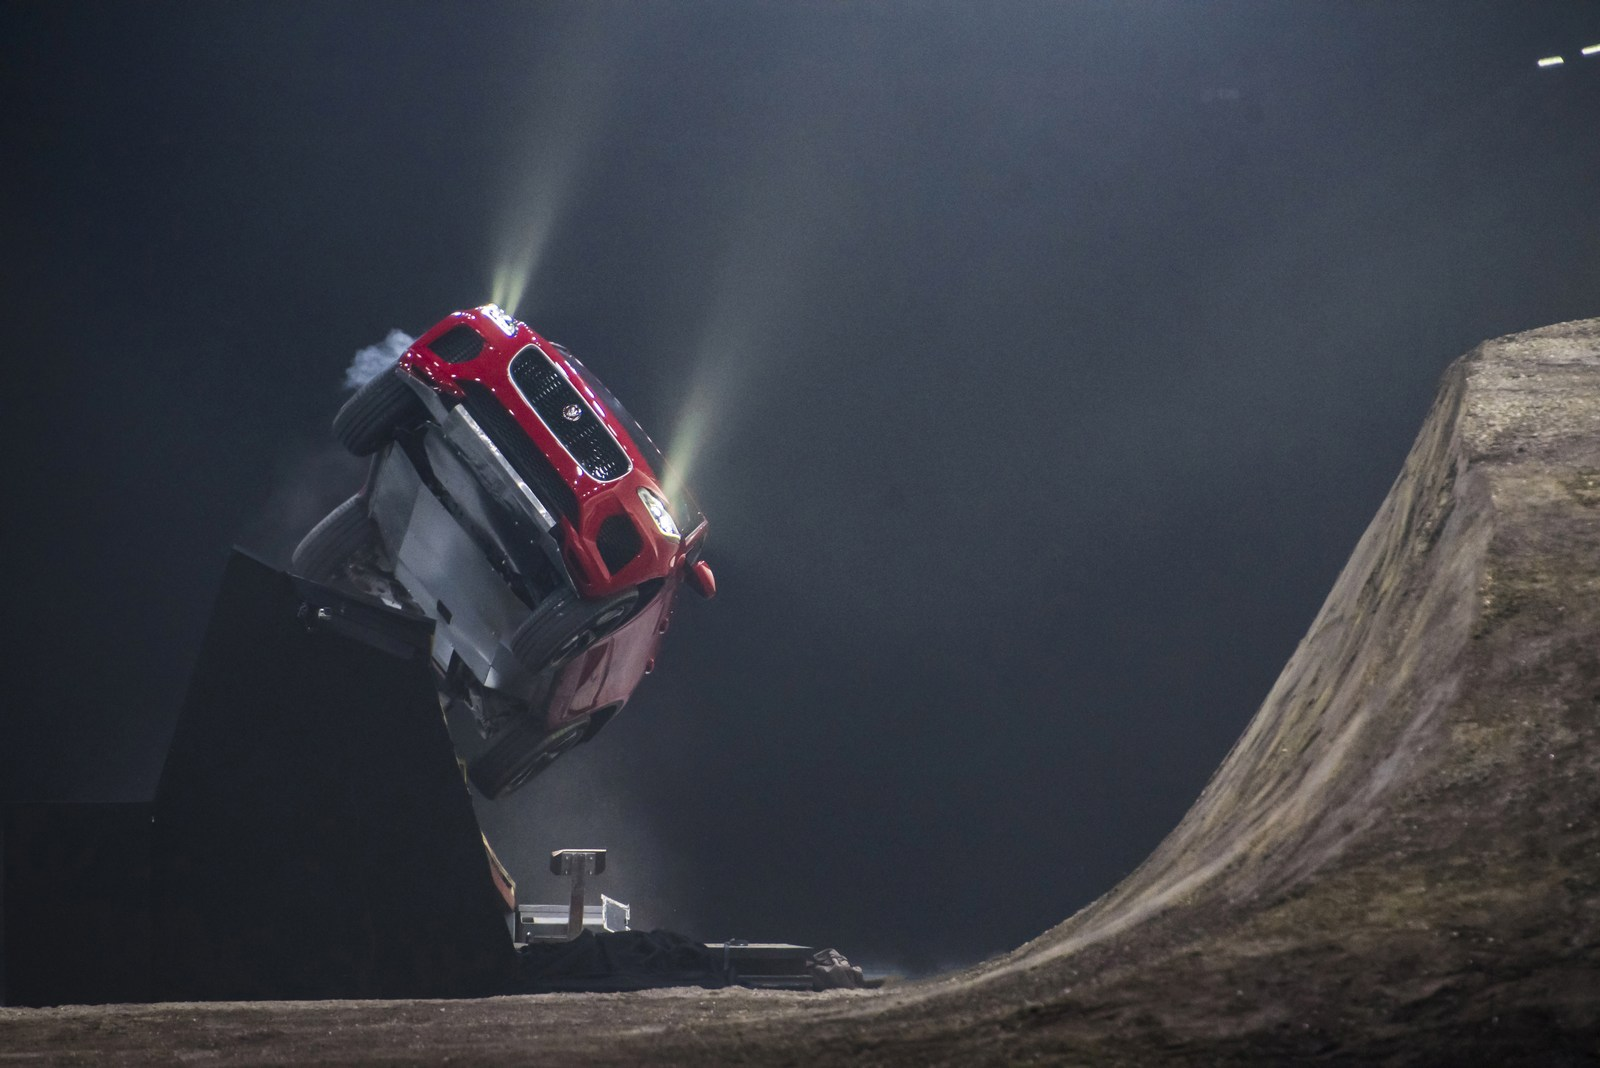 NOTE: IMAGE STRICTLY EMBARGOED UNTIL 20.00 BST, JULY 13th 2017. NO ONLINE USE PRIOR TO THIS TIME.